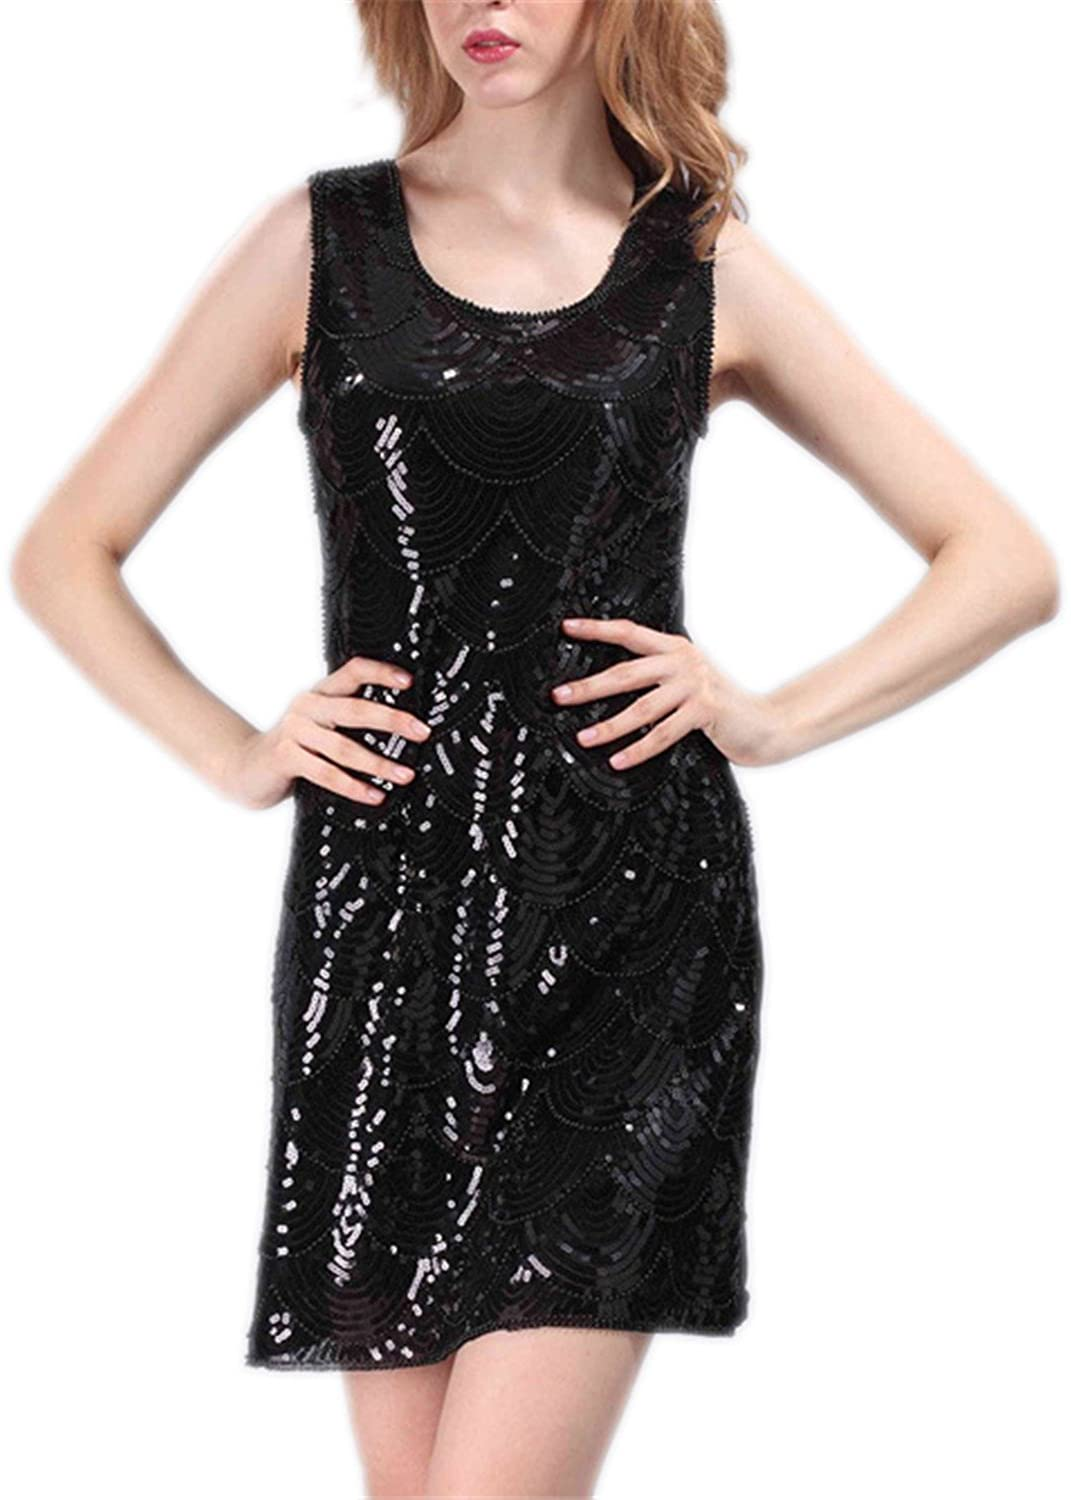 AS503anakla Fashion Spring Women Slim Sexy Elastic Gauze Noble Sequins Beading Scales Party Casual Dresses Black Blue QCD292